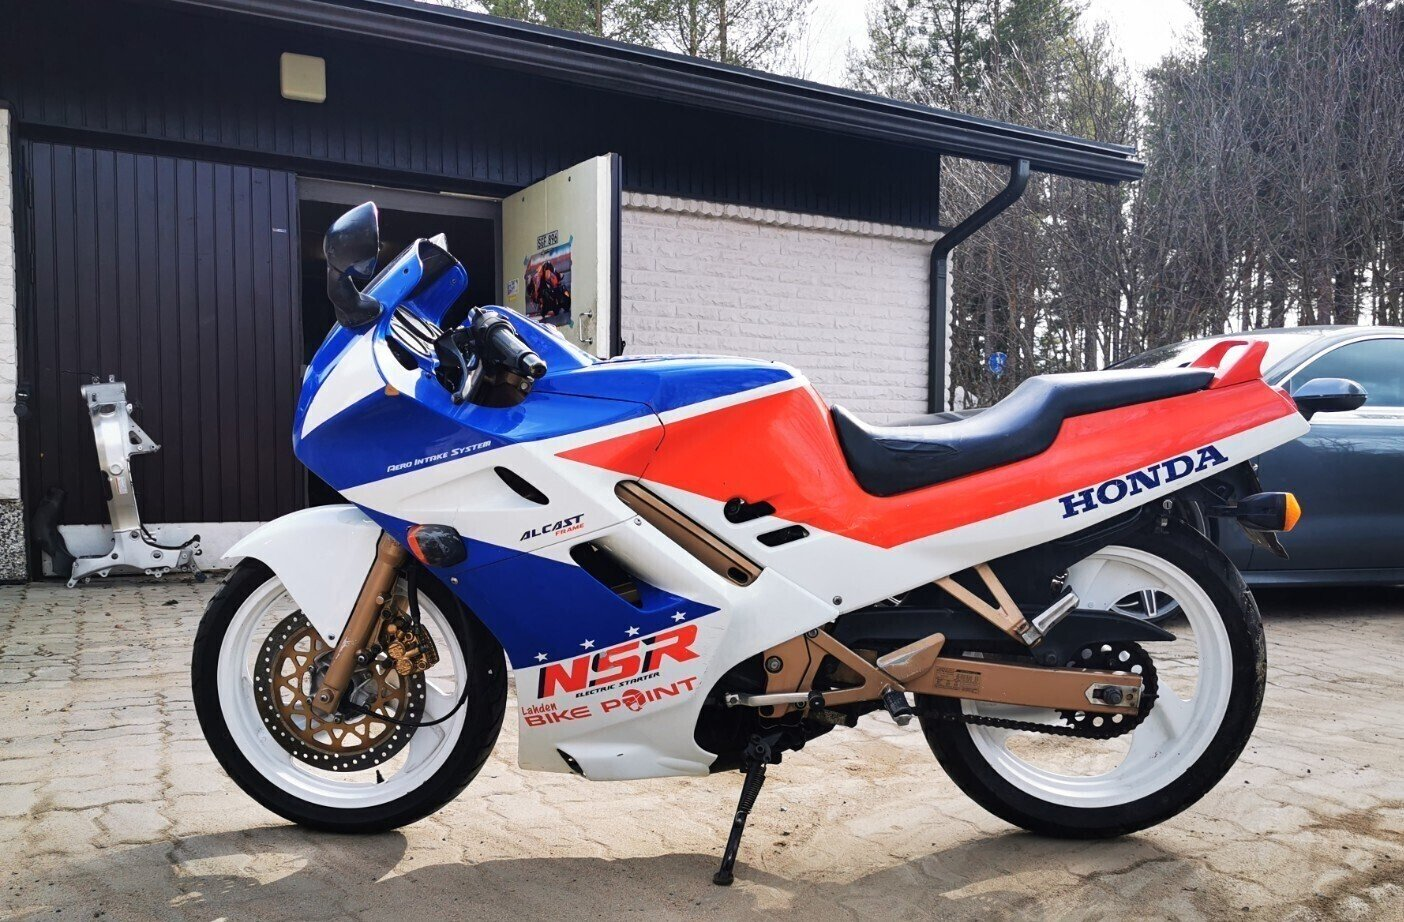 1992 Honda Nsr 125 For Sale (picture 1 of 3)